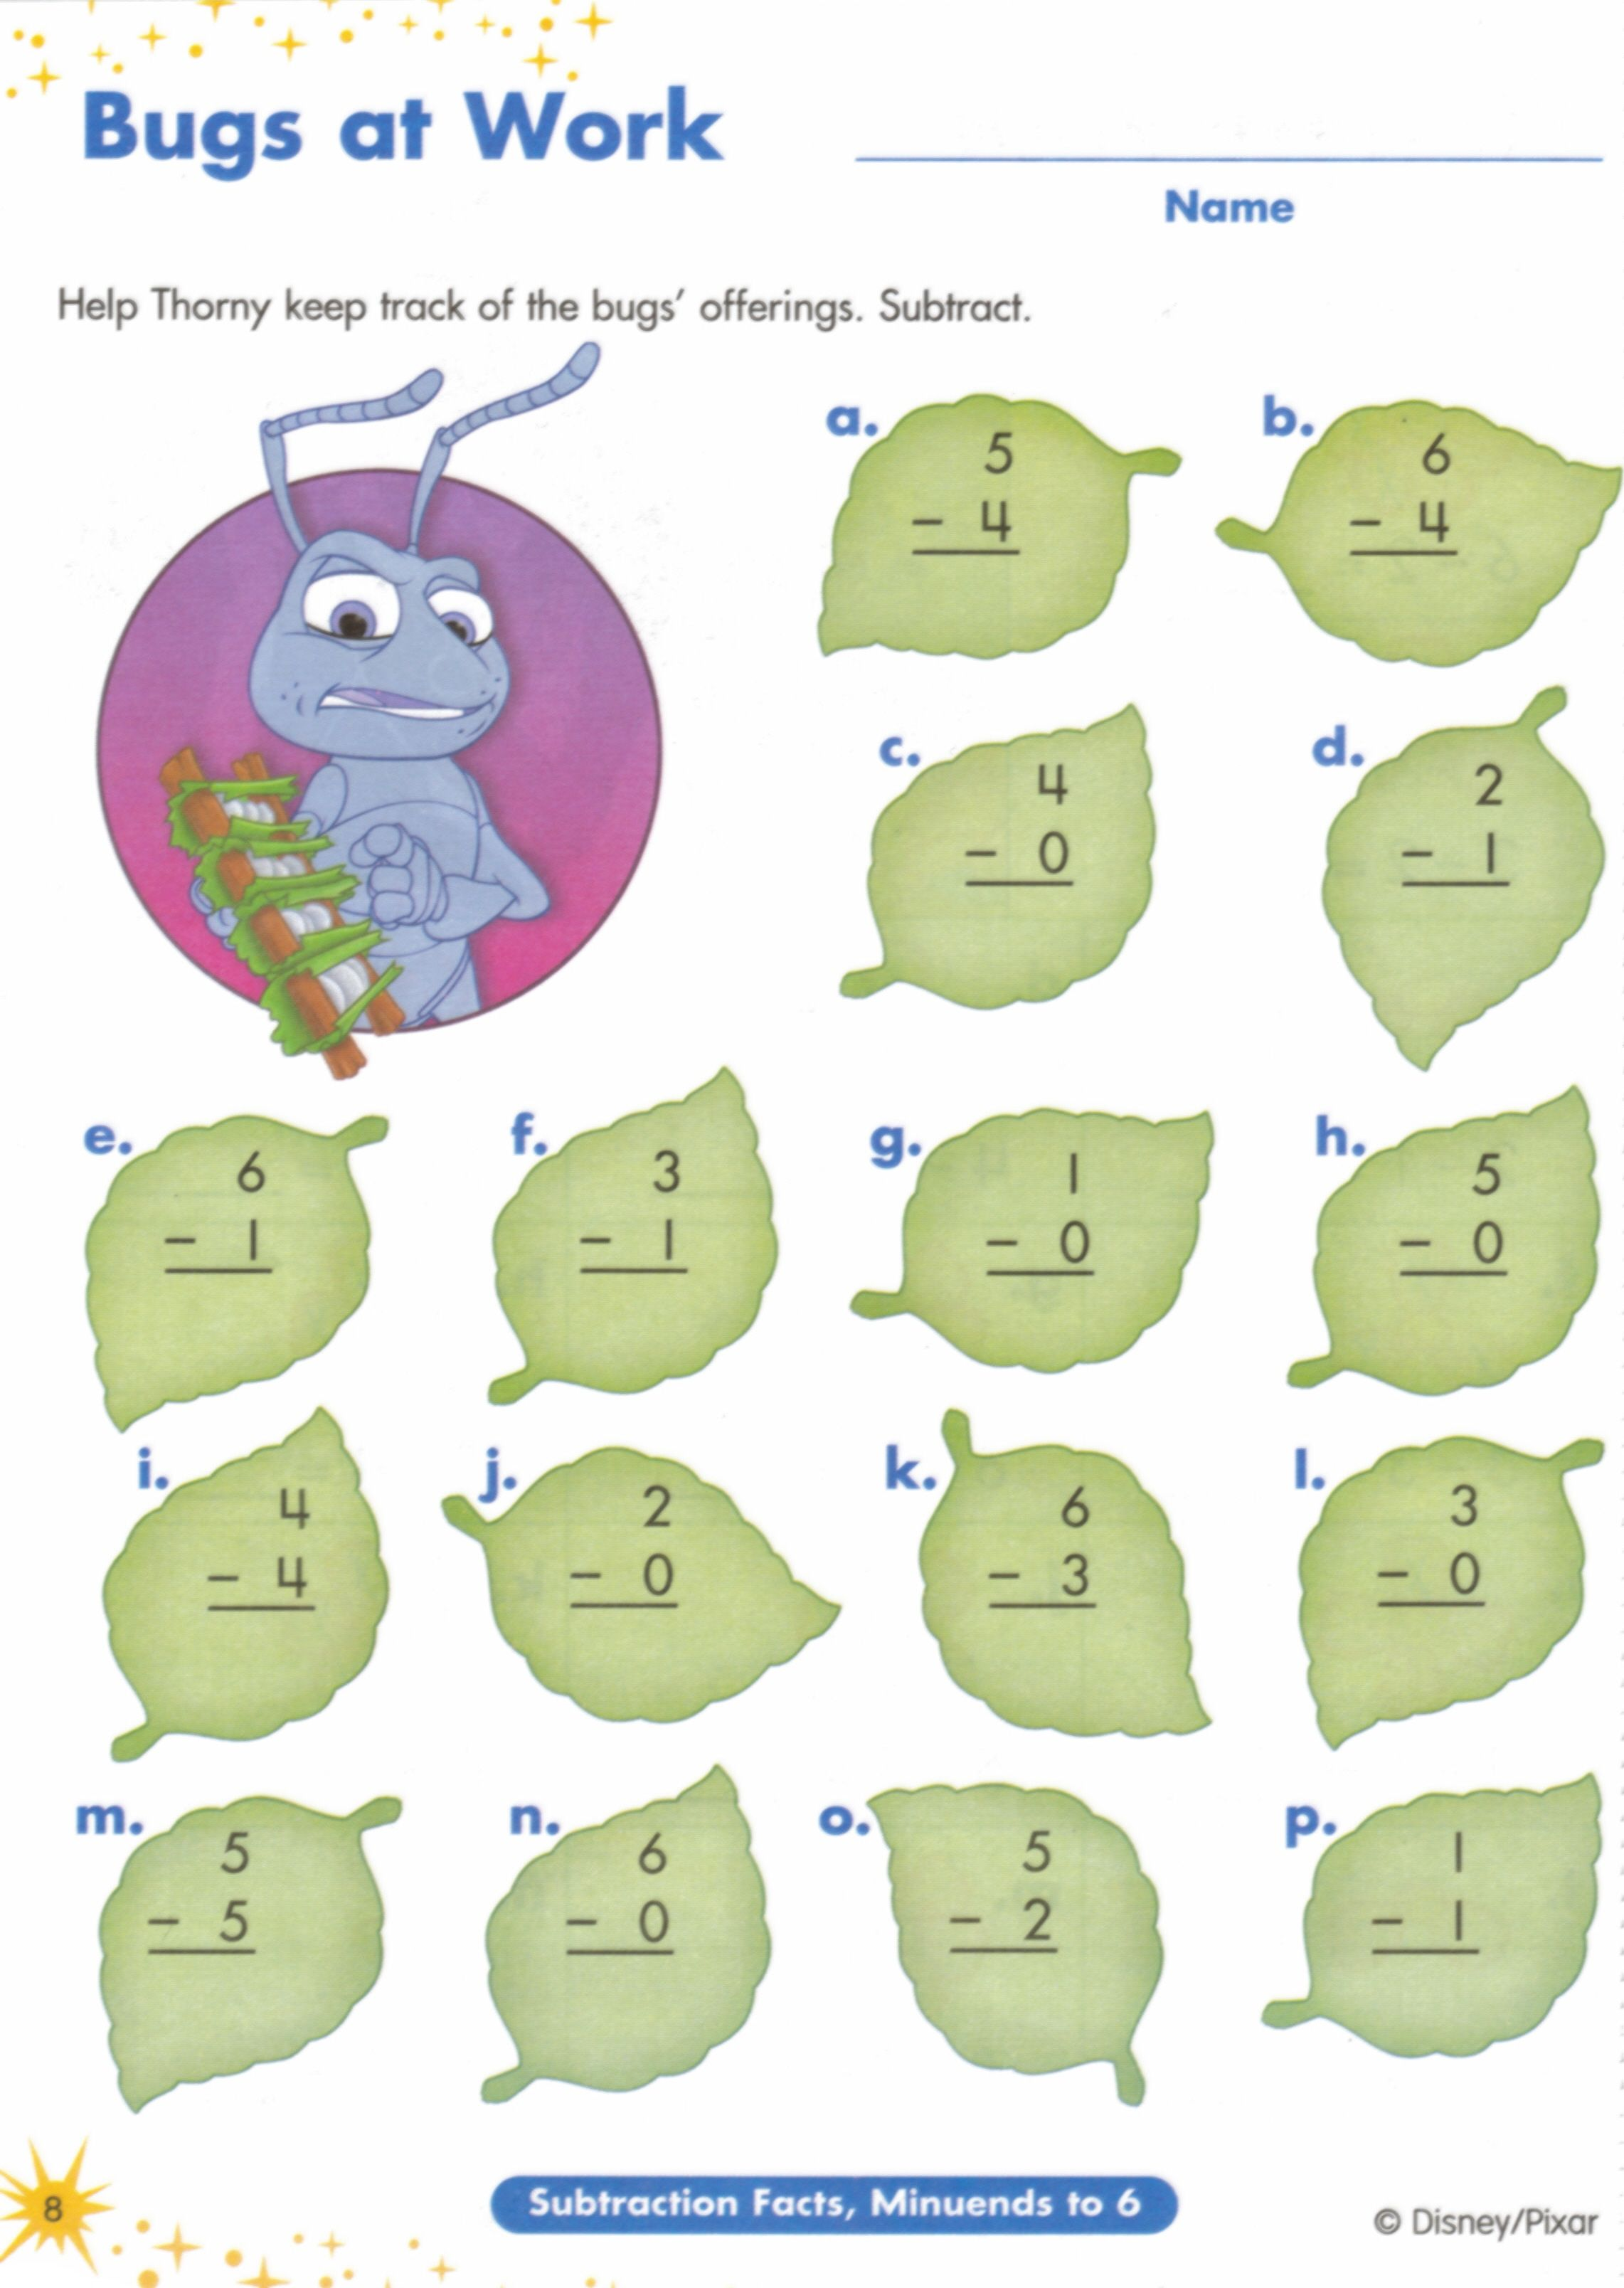 Weirdmailus  Remarkable  Images About Worksheets On Pinterest  Fun Facts For Kids  With Fair  Images About Worksheets On Pinterest  Fun Facts For Kids Earth Day Worksheets And Jungles With Enchanting Mad Minute Maths Worksheets Also Calendar Worksheets For Kids In Addition Conversion Of Units Of Measurement Worksheet And Myself Worksheets Printables As Well As Multiplication Coloring Worksheets Free Additionally Free Printable Literacy Worksheets Ks From Pinterestcom With Weirdmailus  Fair  Images About Worksheets On Pinterest  Fun Facts For Kids  With Enchanting  Images About Worksheets On Pinterest  Fun Facts For Kids Earth Day Worksheets And Jungles And Remarkable Mad Minute Maths Worksheets Also Calendar Worksheets For Kids In Addition Conversion Of Units Of Measurement Worksheet From Pinterestcom